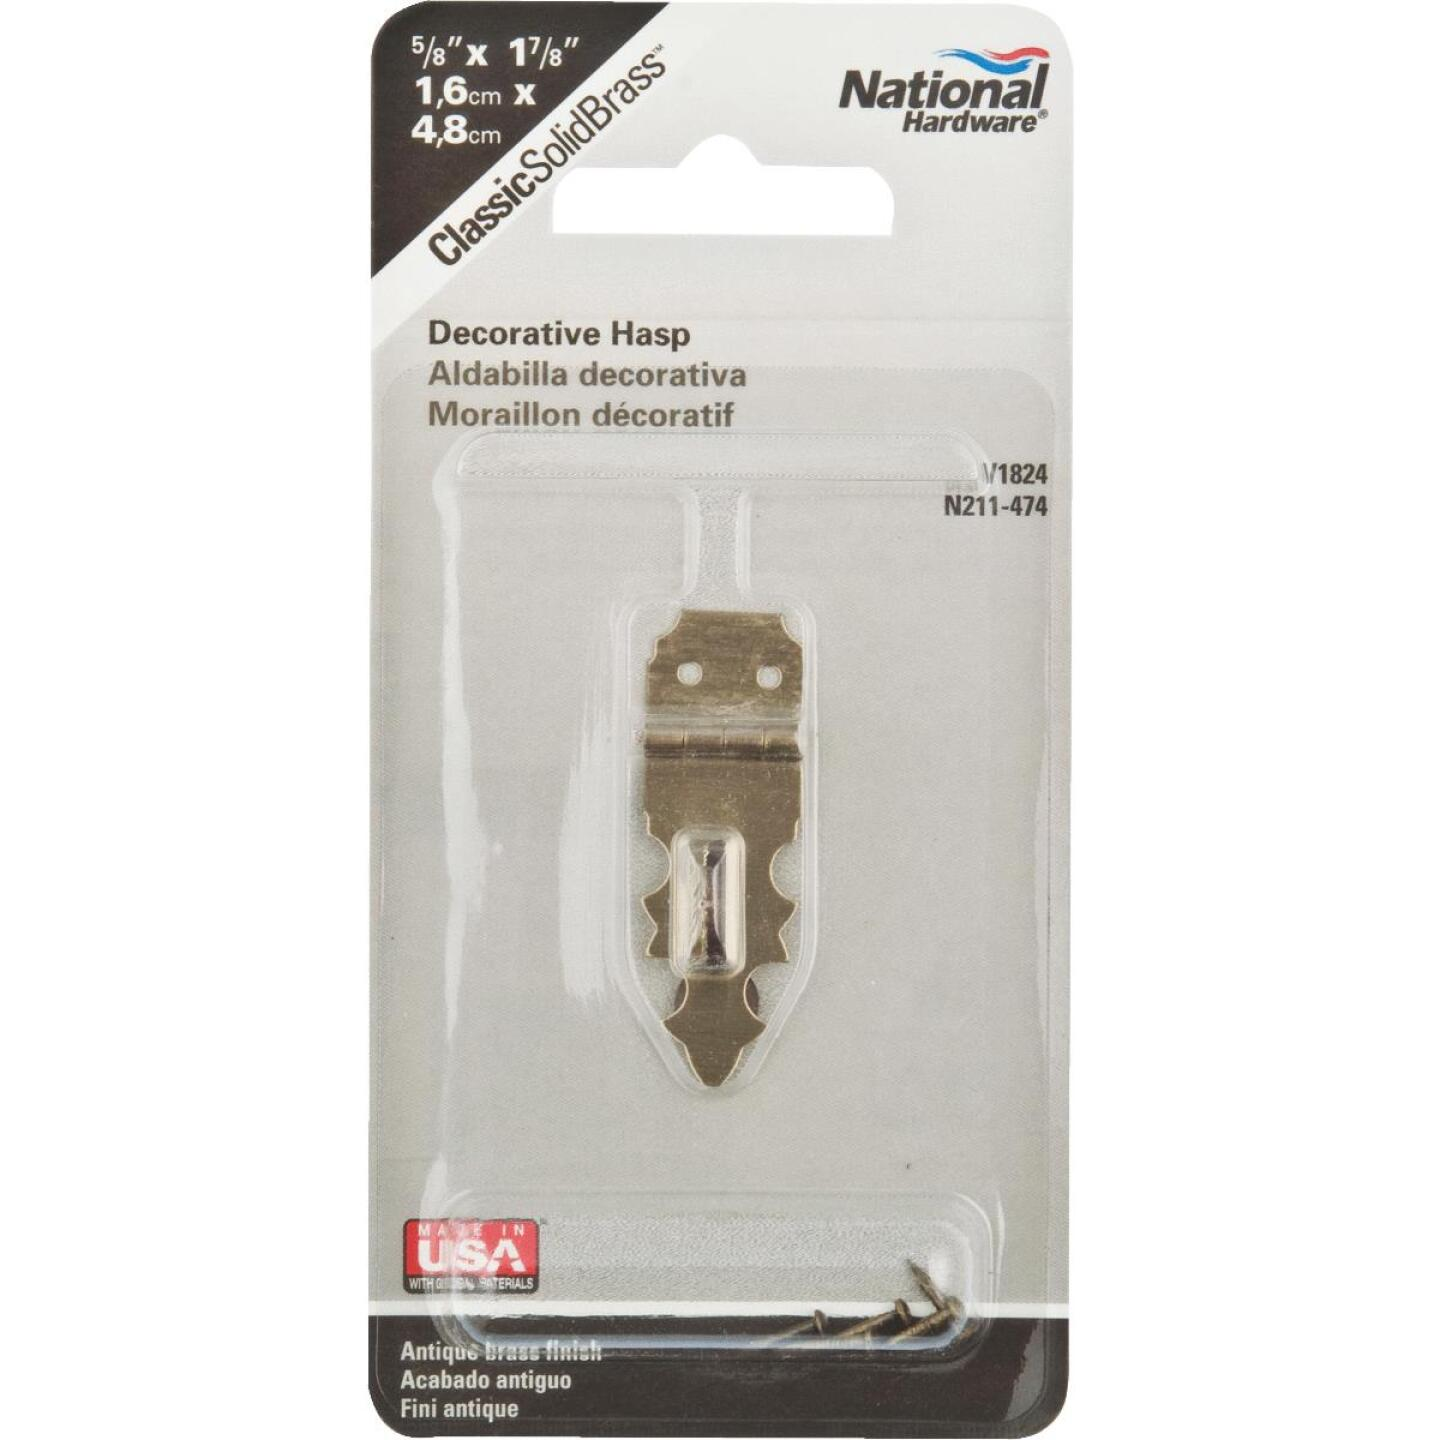 National 5/8 In. x 1-7/8 In. Antique Brass 2-Hole Decorative Hasp Image 2